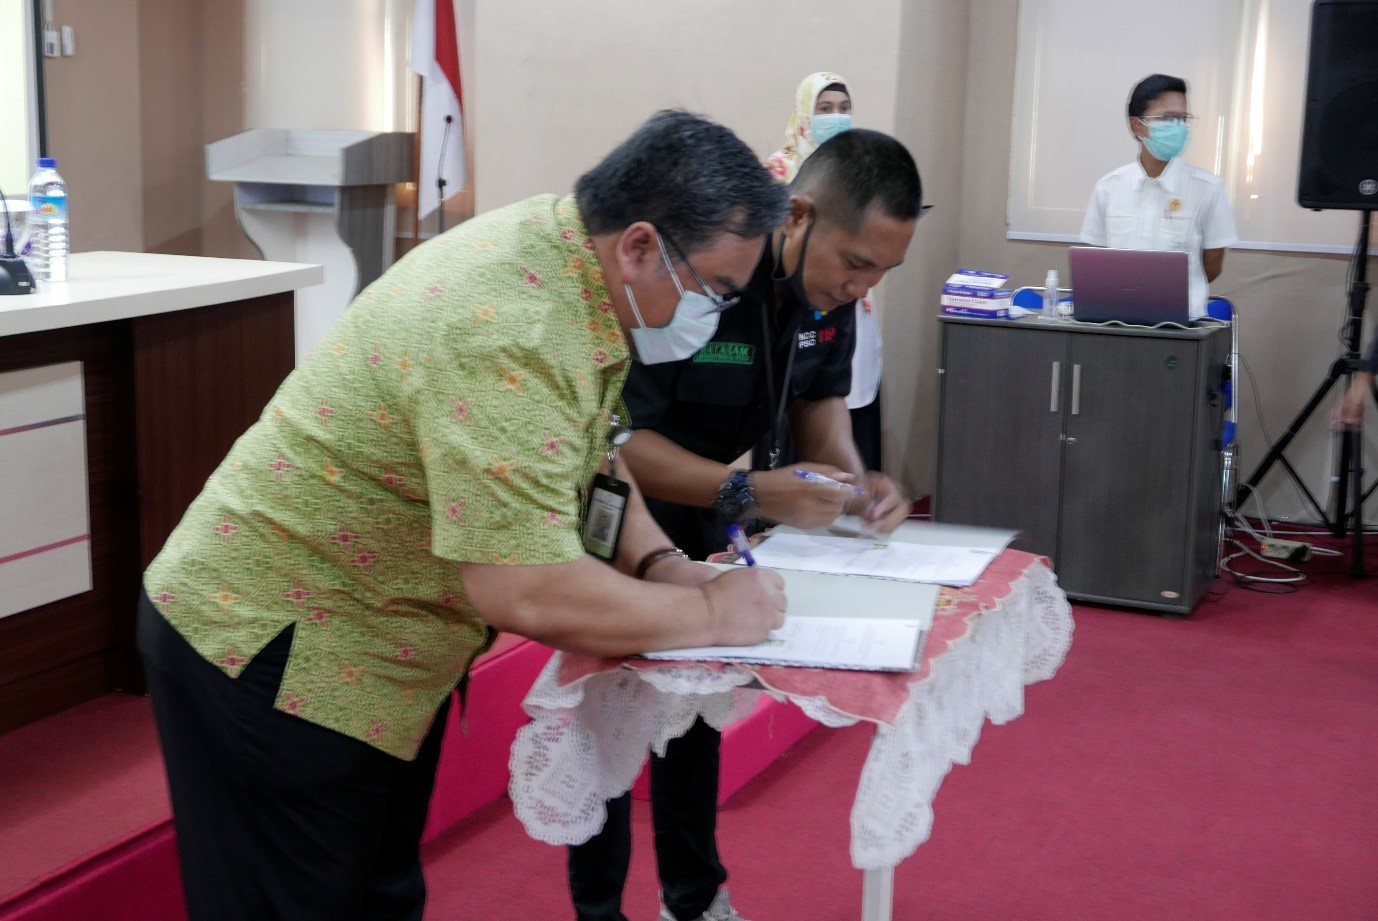 SIGNING OF A COOPERATION AGREEMENT BETWEEN THE FACULTY OF MEDICINE, ISLAMIC UNIVERSITY OF AL-AZHAR AND THE REGIONAL PUBLIC HOSPITAL OF MATARAM CITY